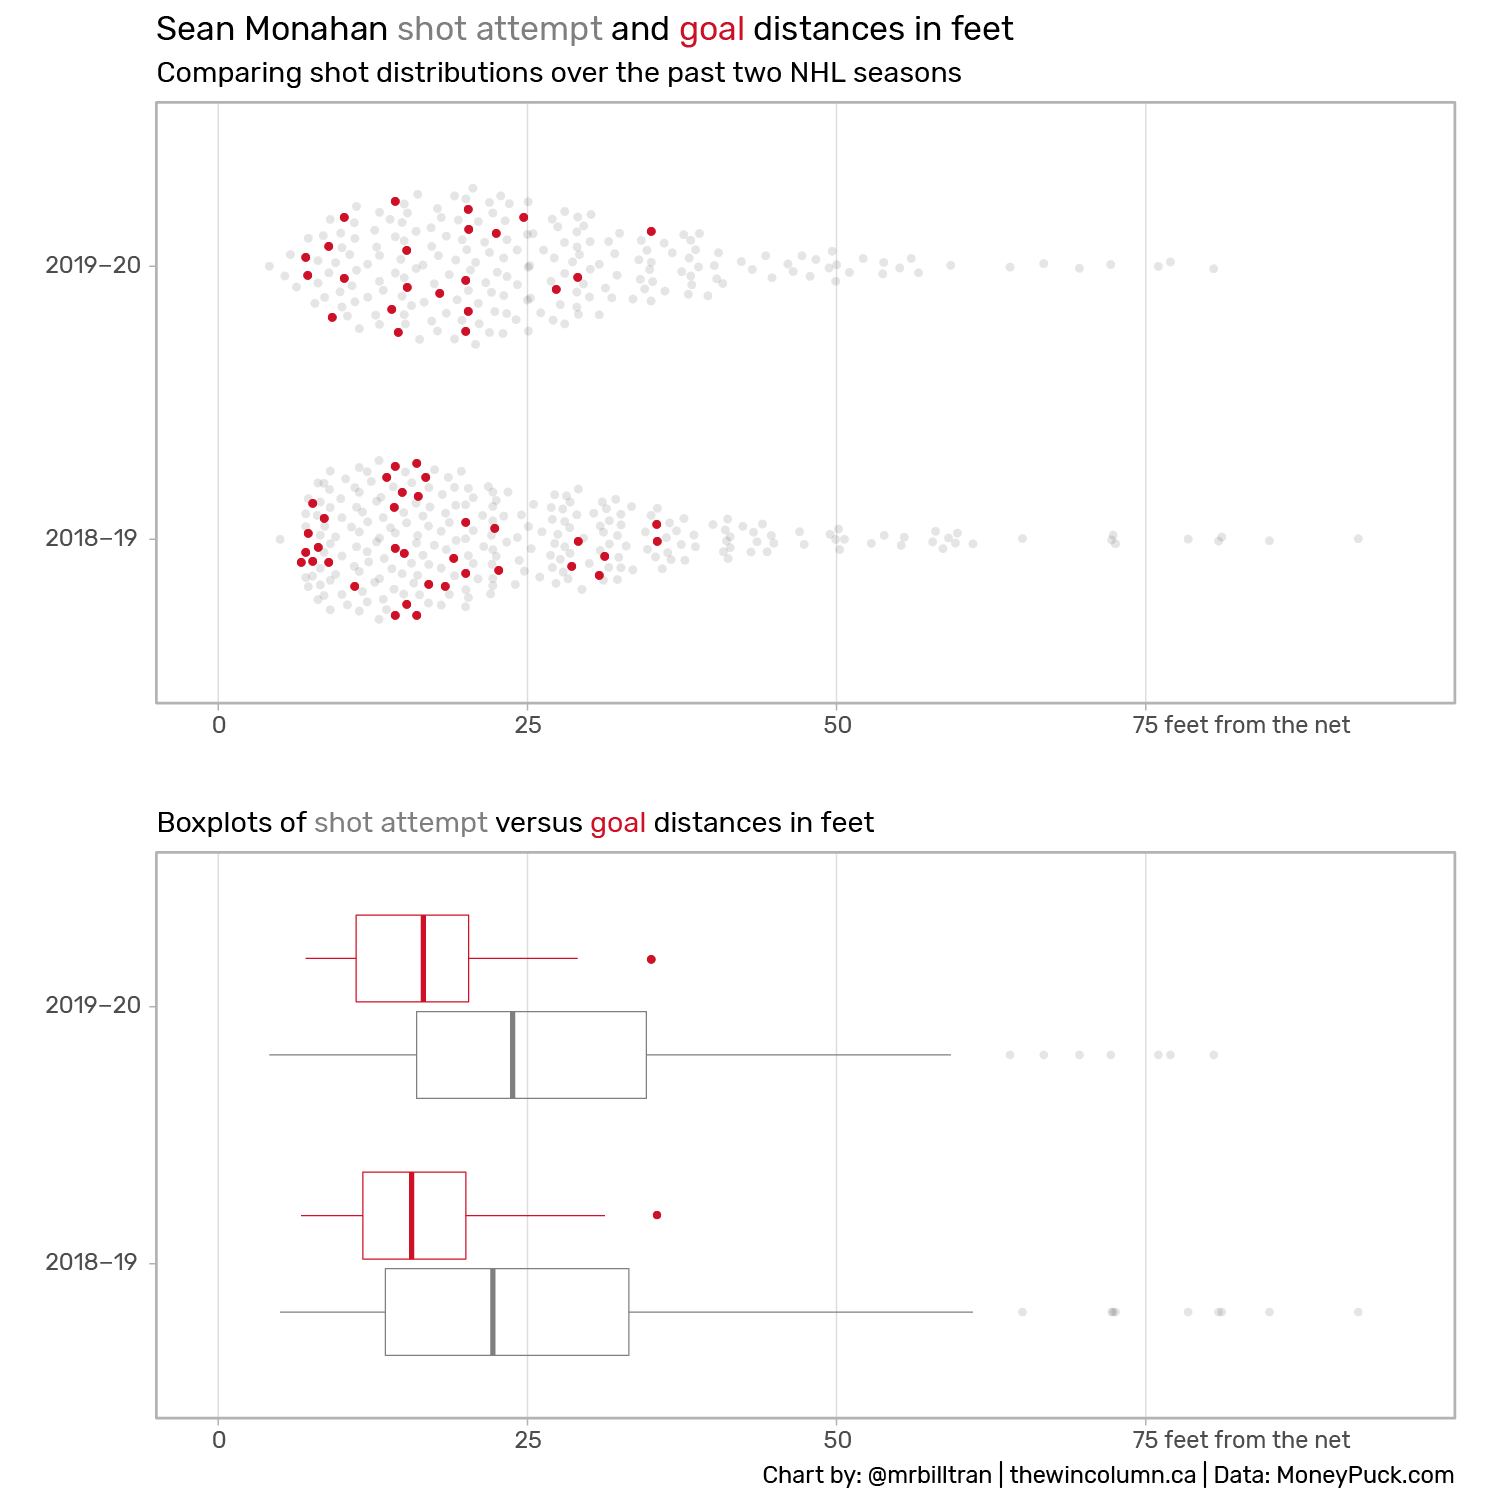 Beeswarm and boxplots of Sean Monahan's (Calgary Flames) shot and goal distributions from 2018-19 and 2019-20.